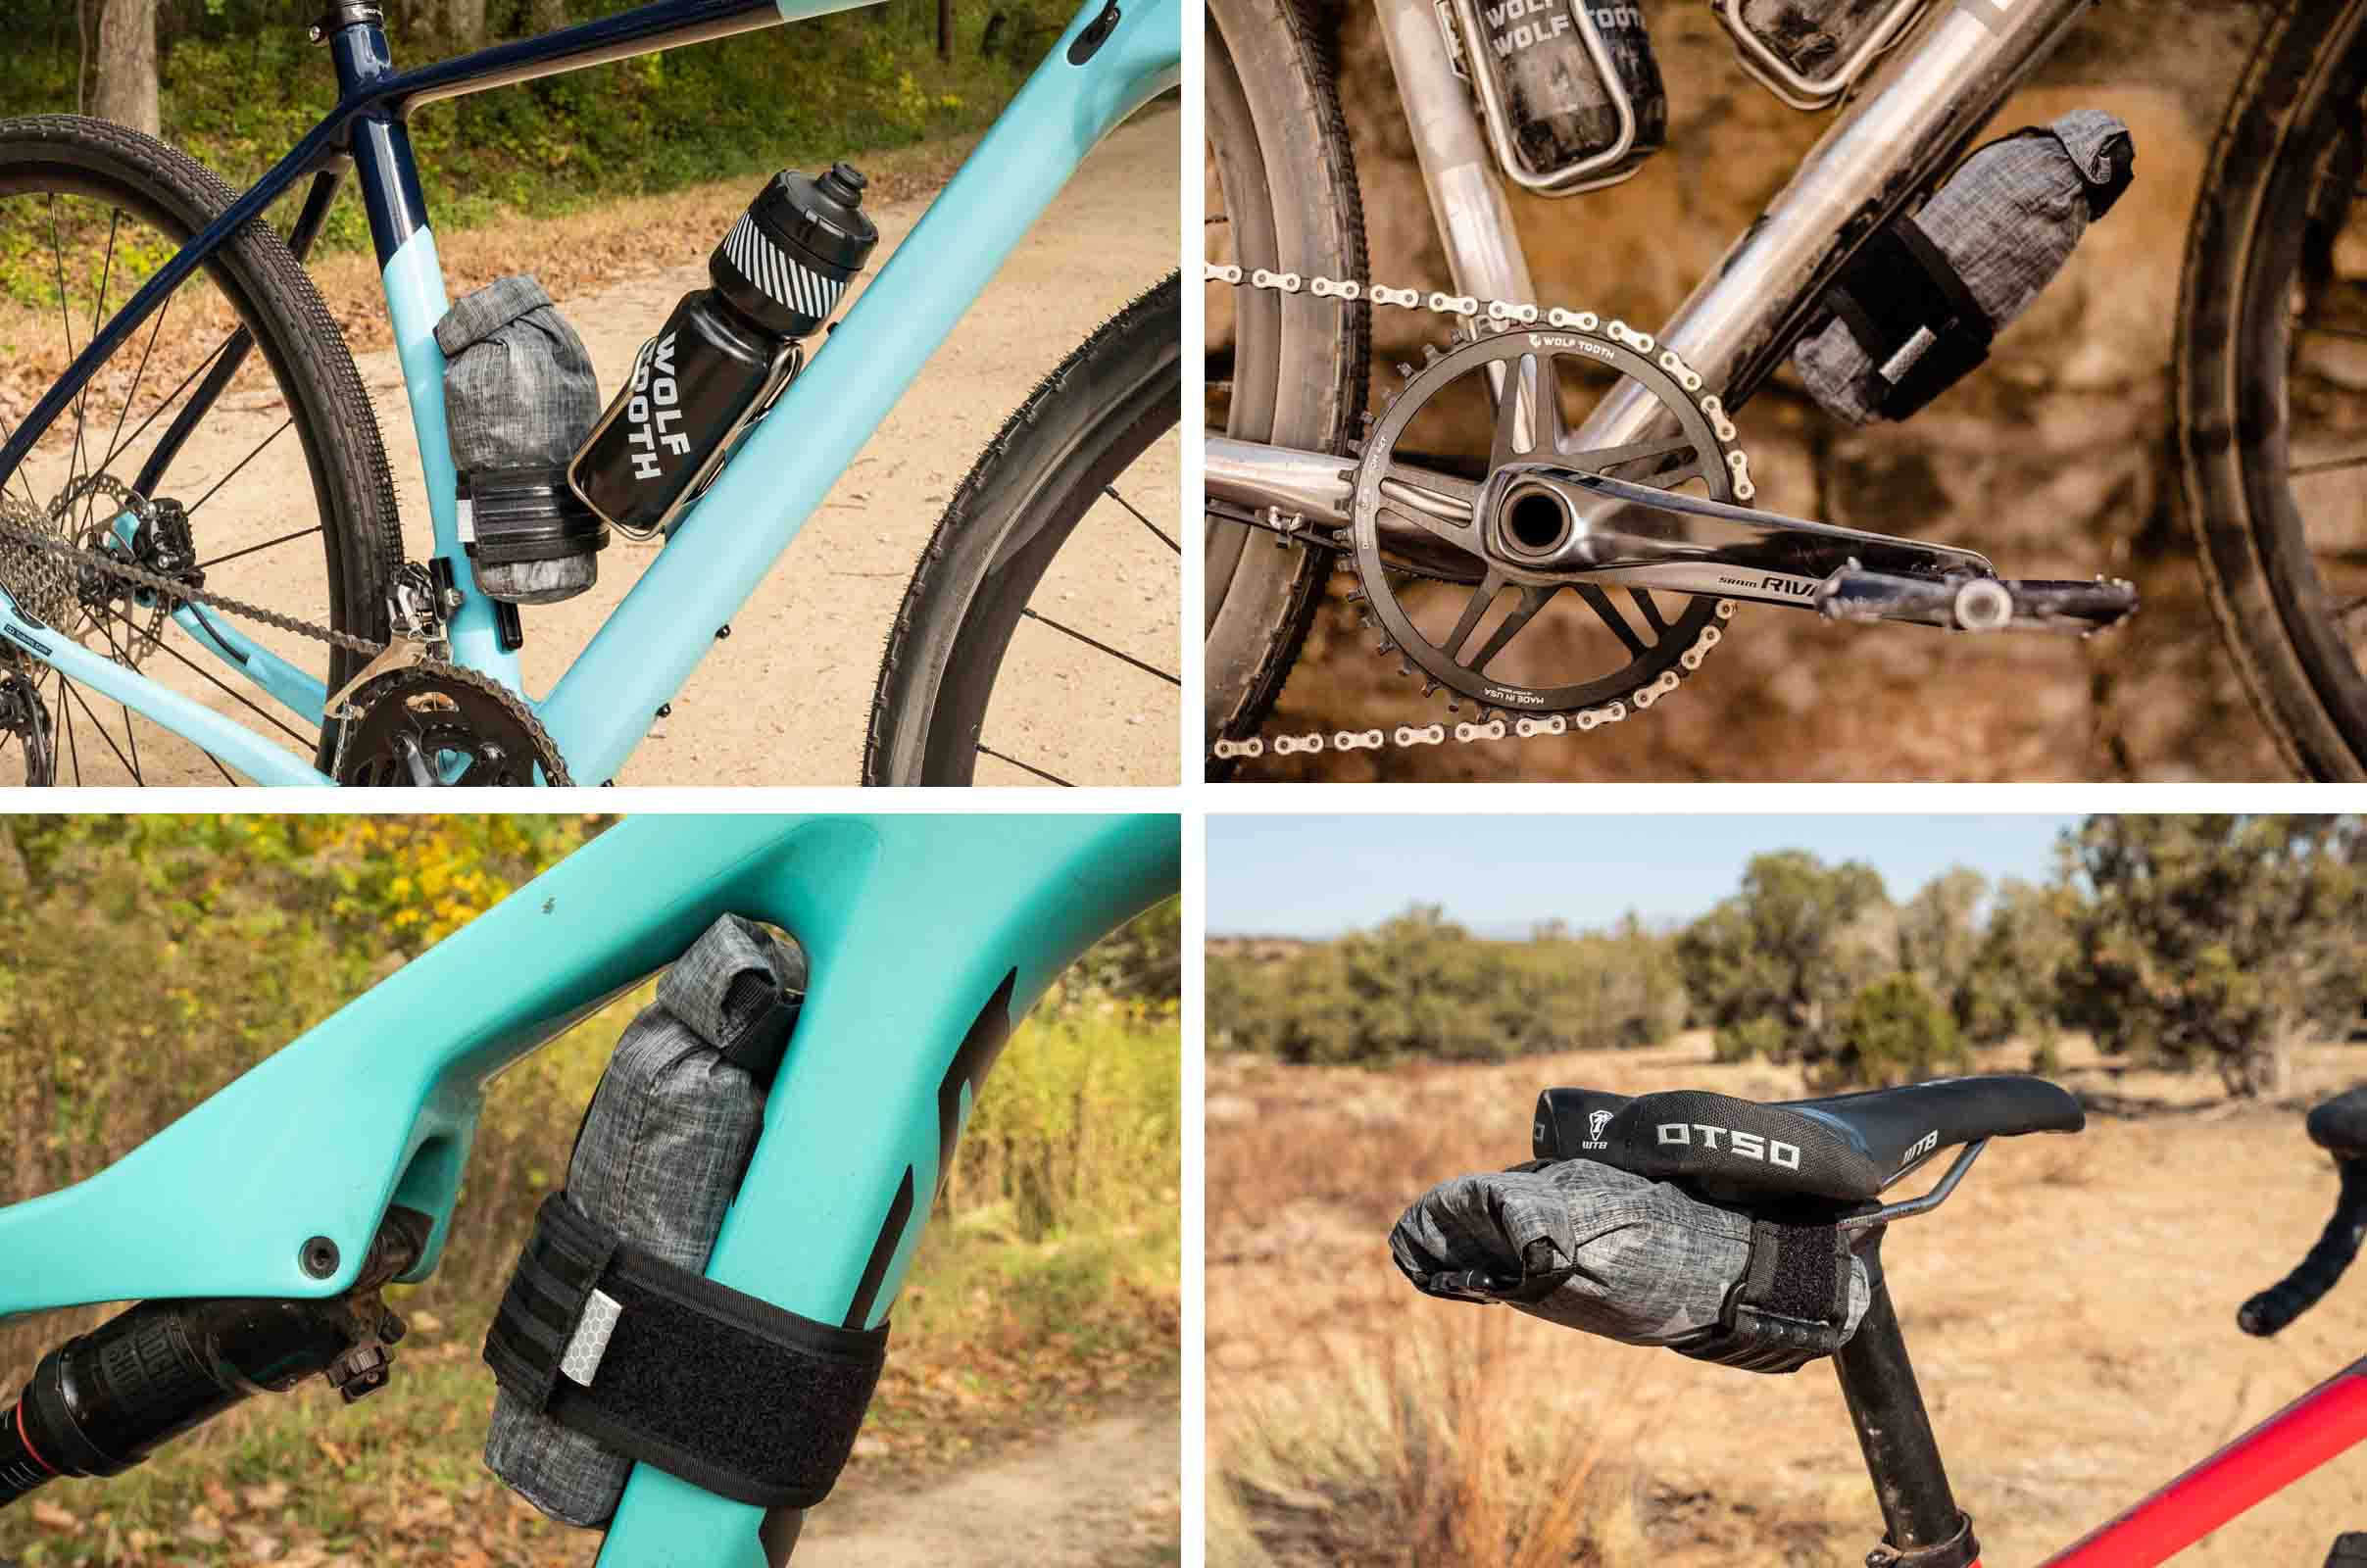 Wolf Tooth Components B-RAD TekLite roll-top accessory bags on bikes